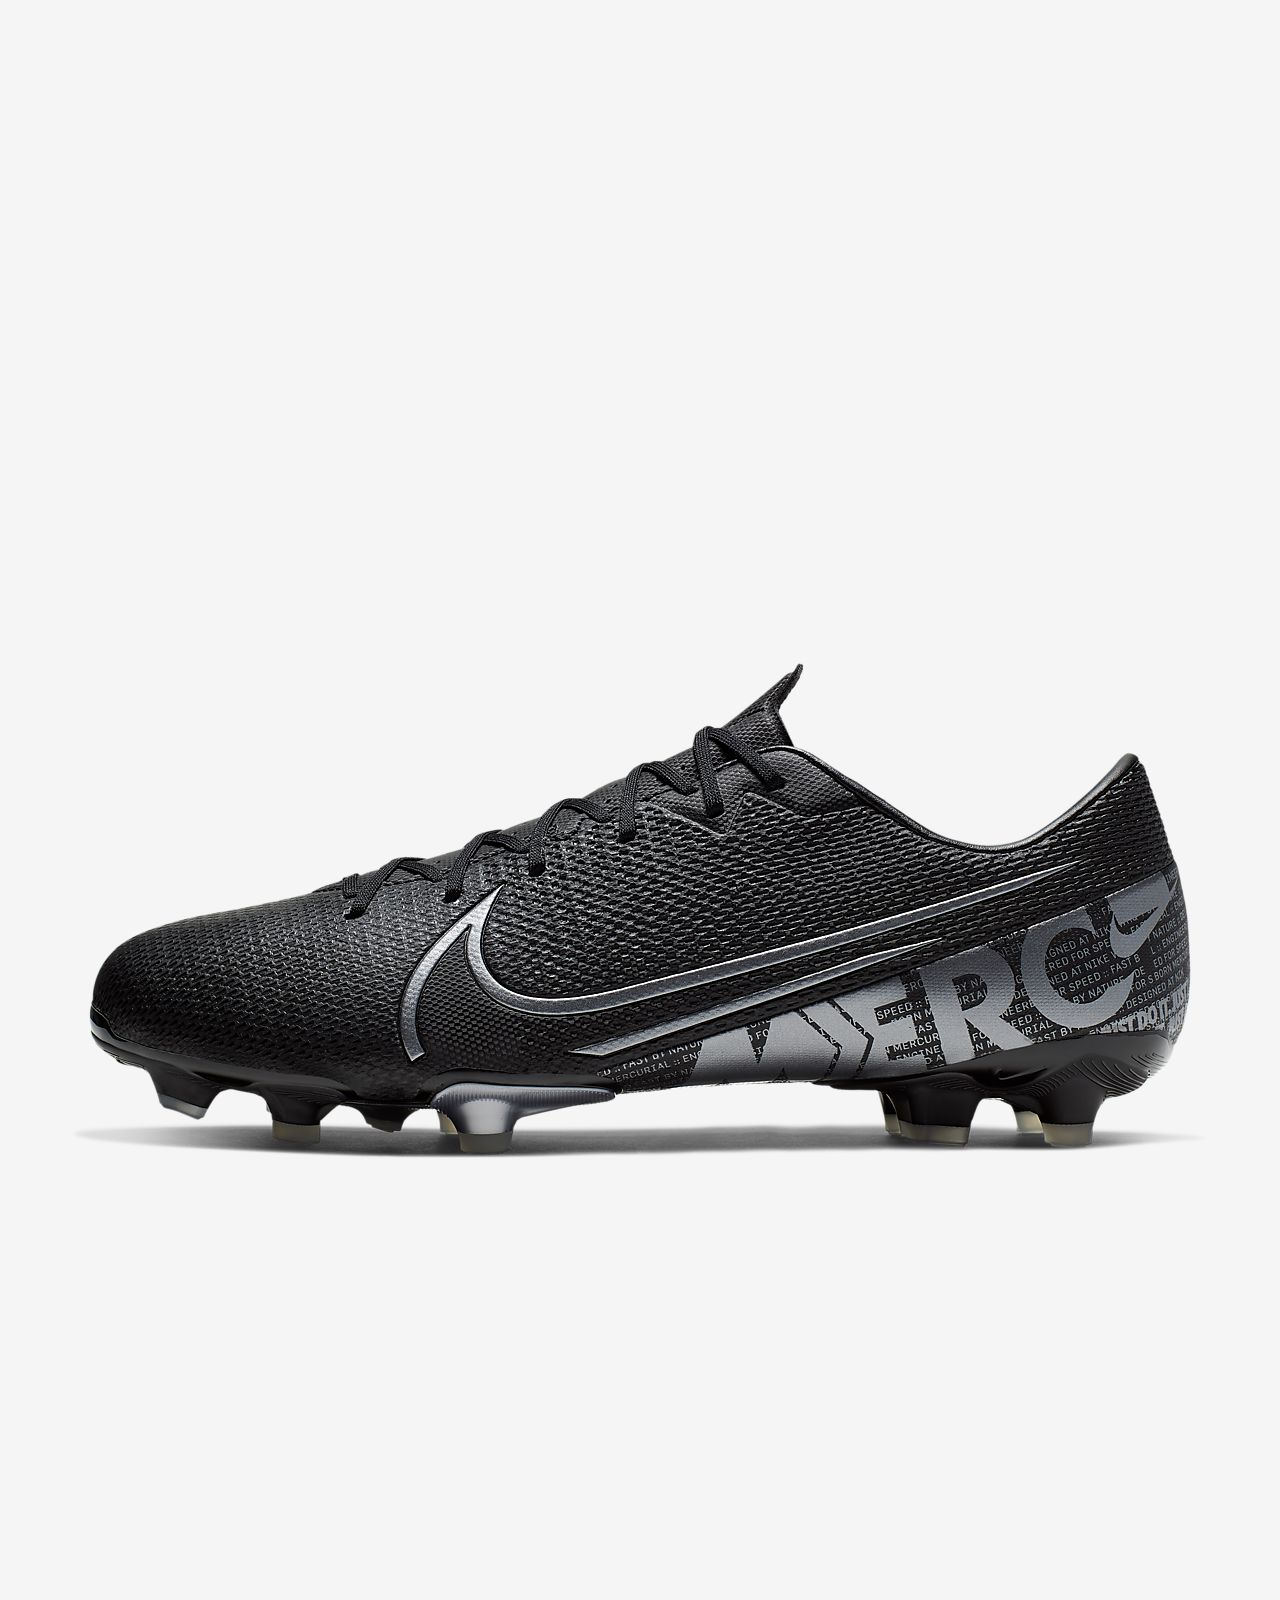 purchase cheap arrives lower price with Nike Mercurial Vapor 13 Academy MG Multi-Ground Soccer Cleat